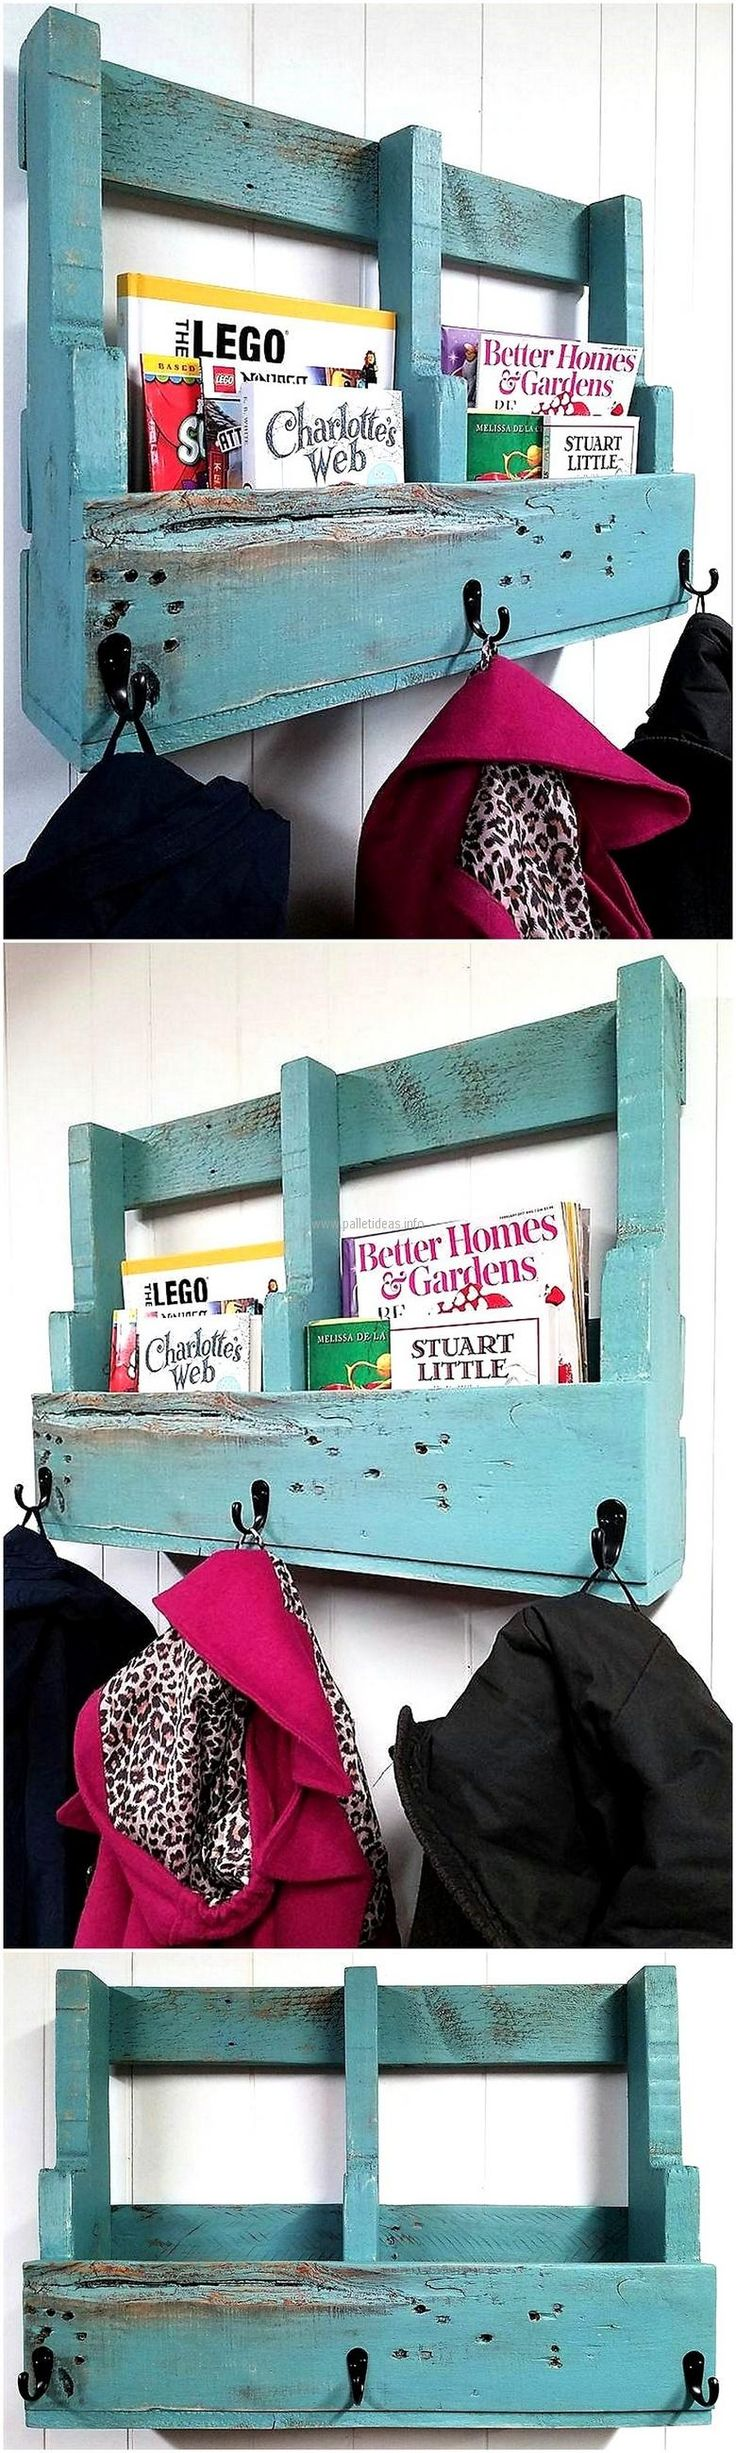 Mind Blowing Recycled Pallet Creations Those who